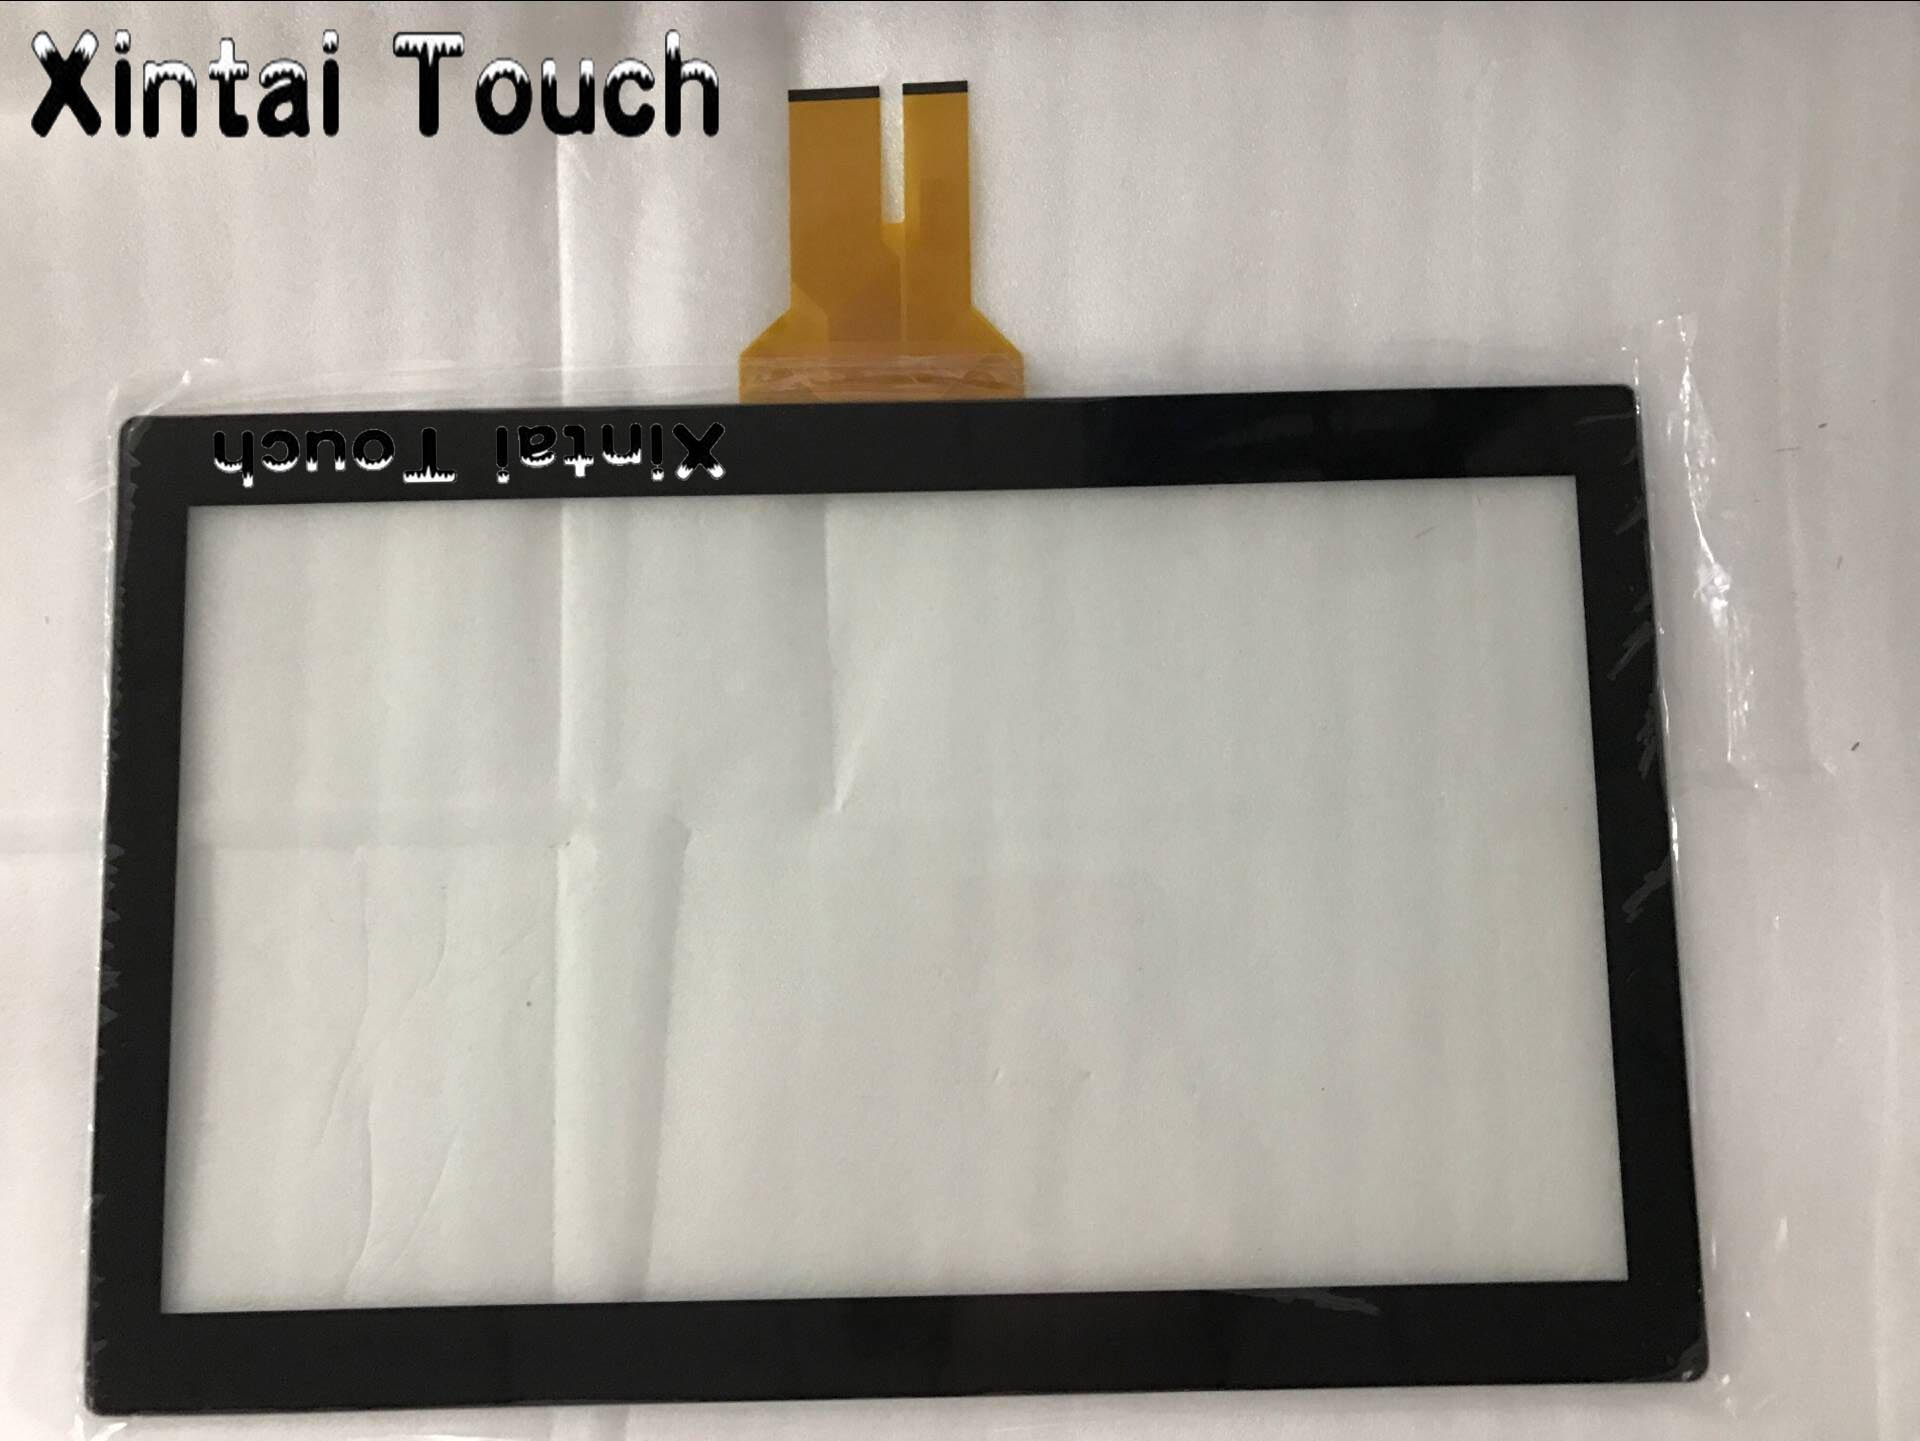 15.6 Inch 10 Points Capacitive Multi Touch Screen Overlay/ Multi-Touch Screen Panel Kit for LCD Monitor with EETI controller 32 inch high definition 2 points multi touch screen panel ir multi touch screen overlay for touch table kiosk etc